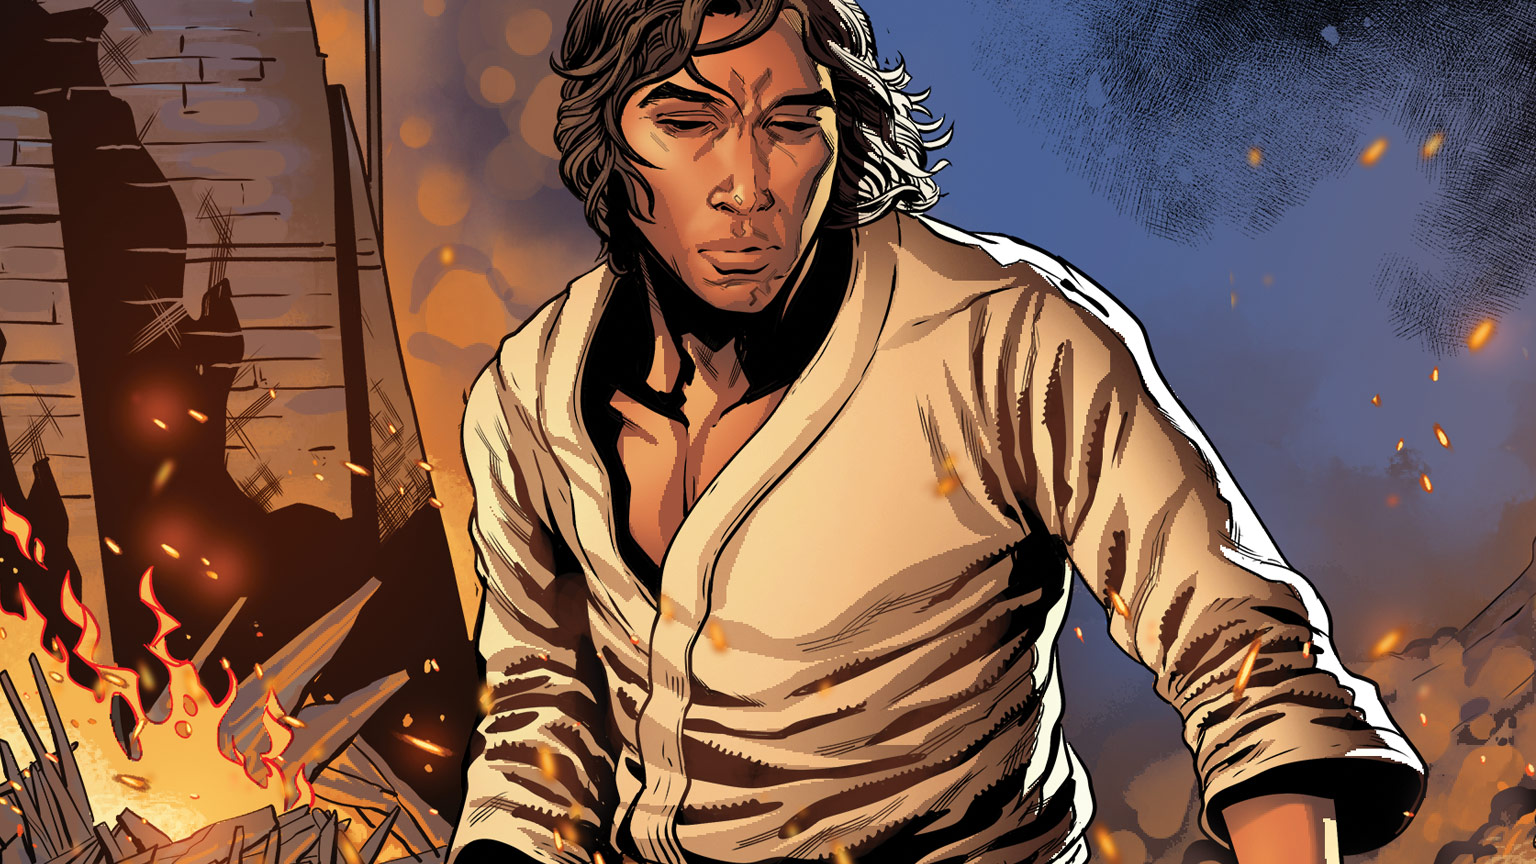 Ben Solo from The Rise of Kylo Ren #1